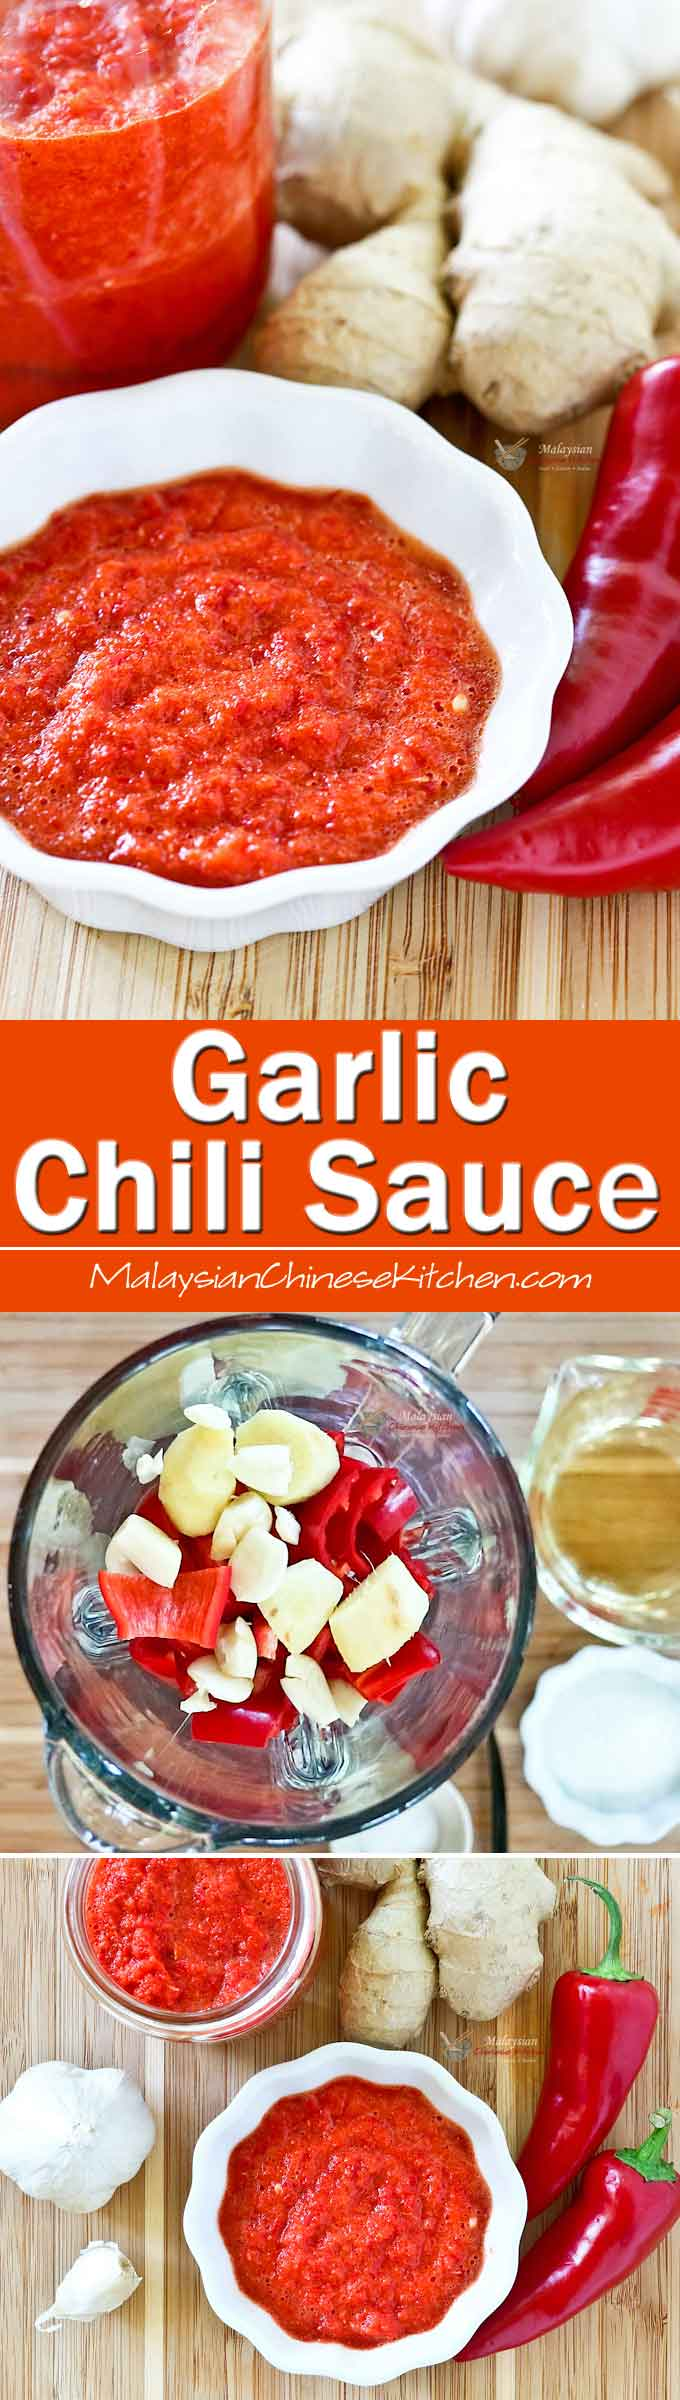 This simple no-cook Garlic Chili Sauce is a tasty condiment to have on hand. It is the perfect dip for dumplings, crackers, and Hainanese chicken rice. | MalaysianChineseKitchen.com